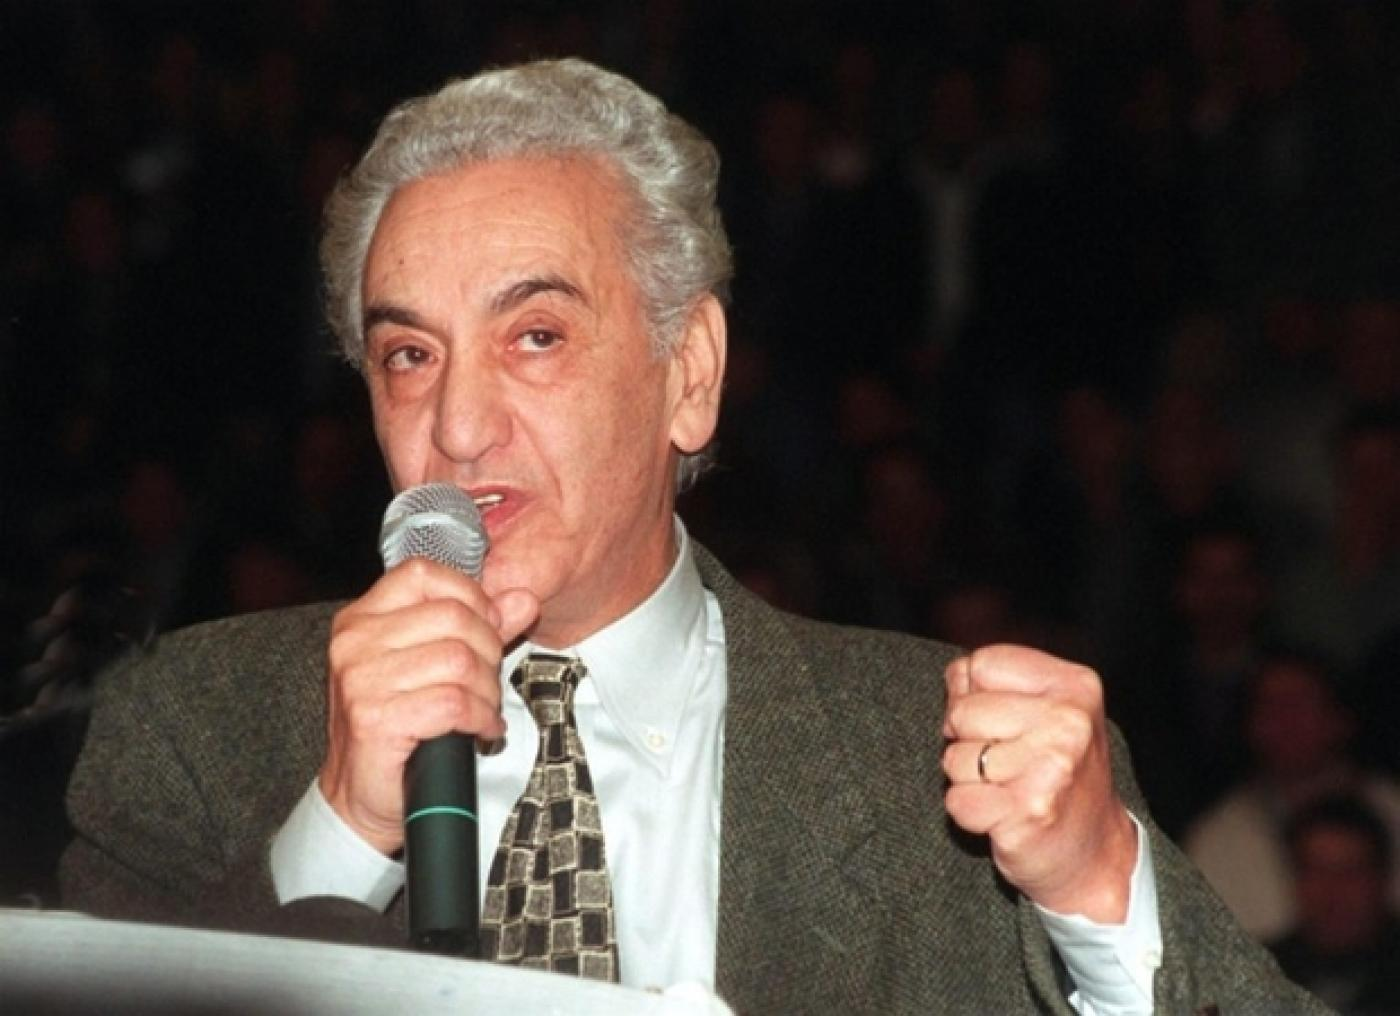 Algeria: the difficult legacy of Hocine Ait Ahmed | Middle East Eye